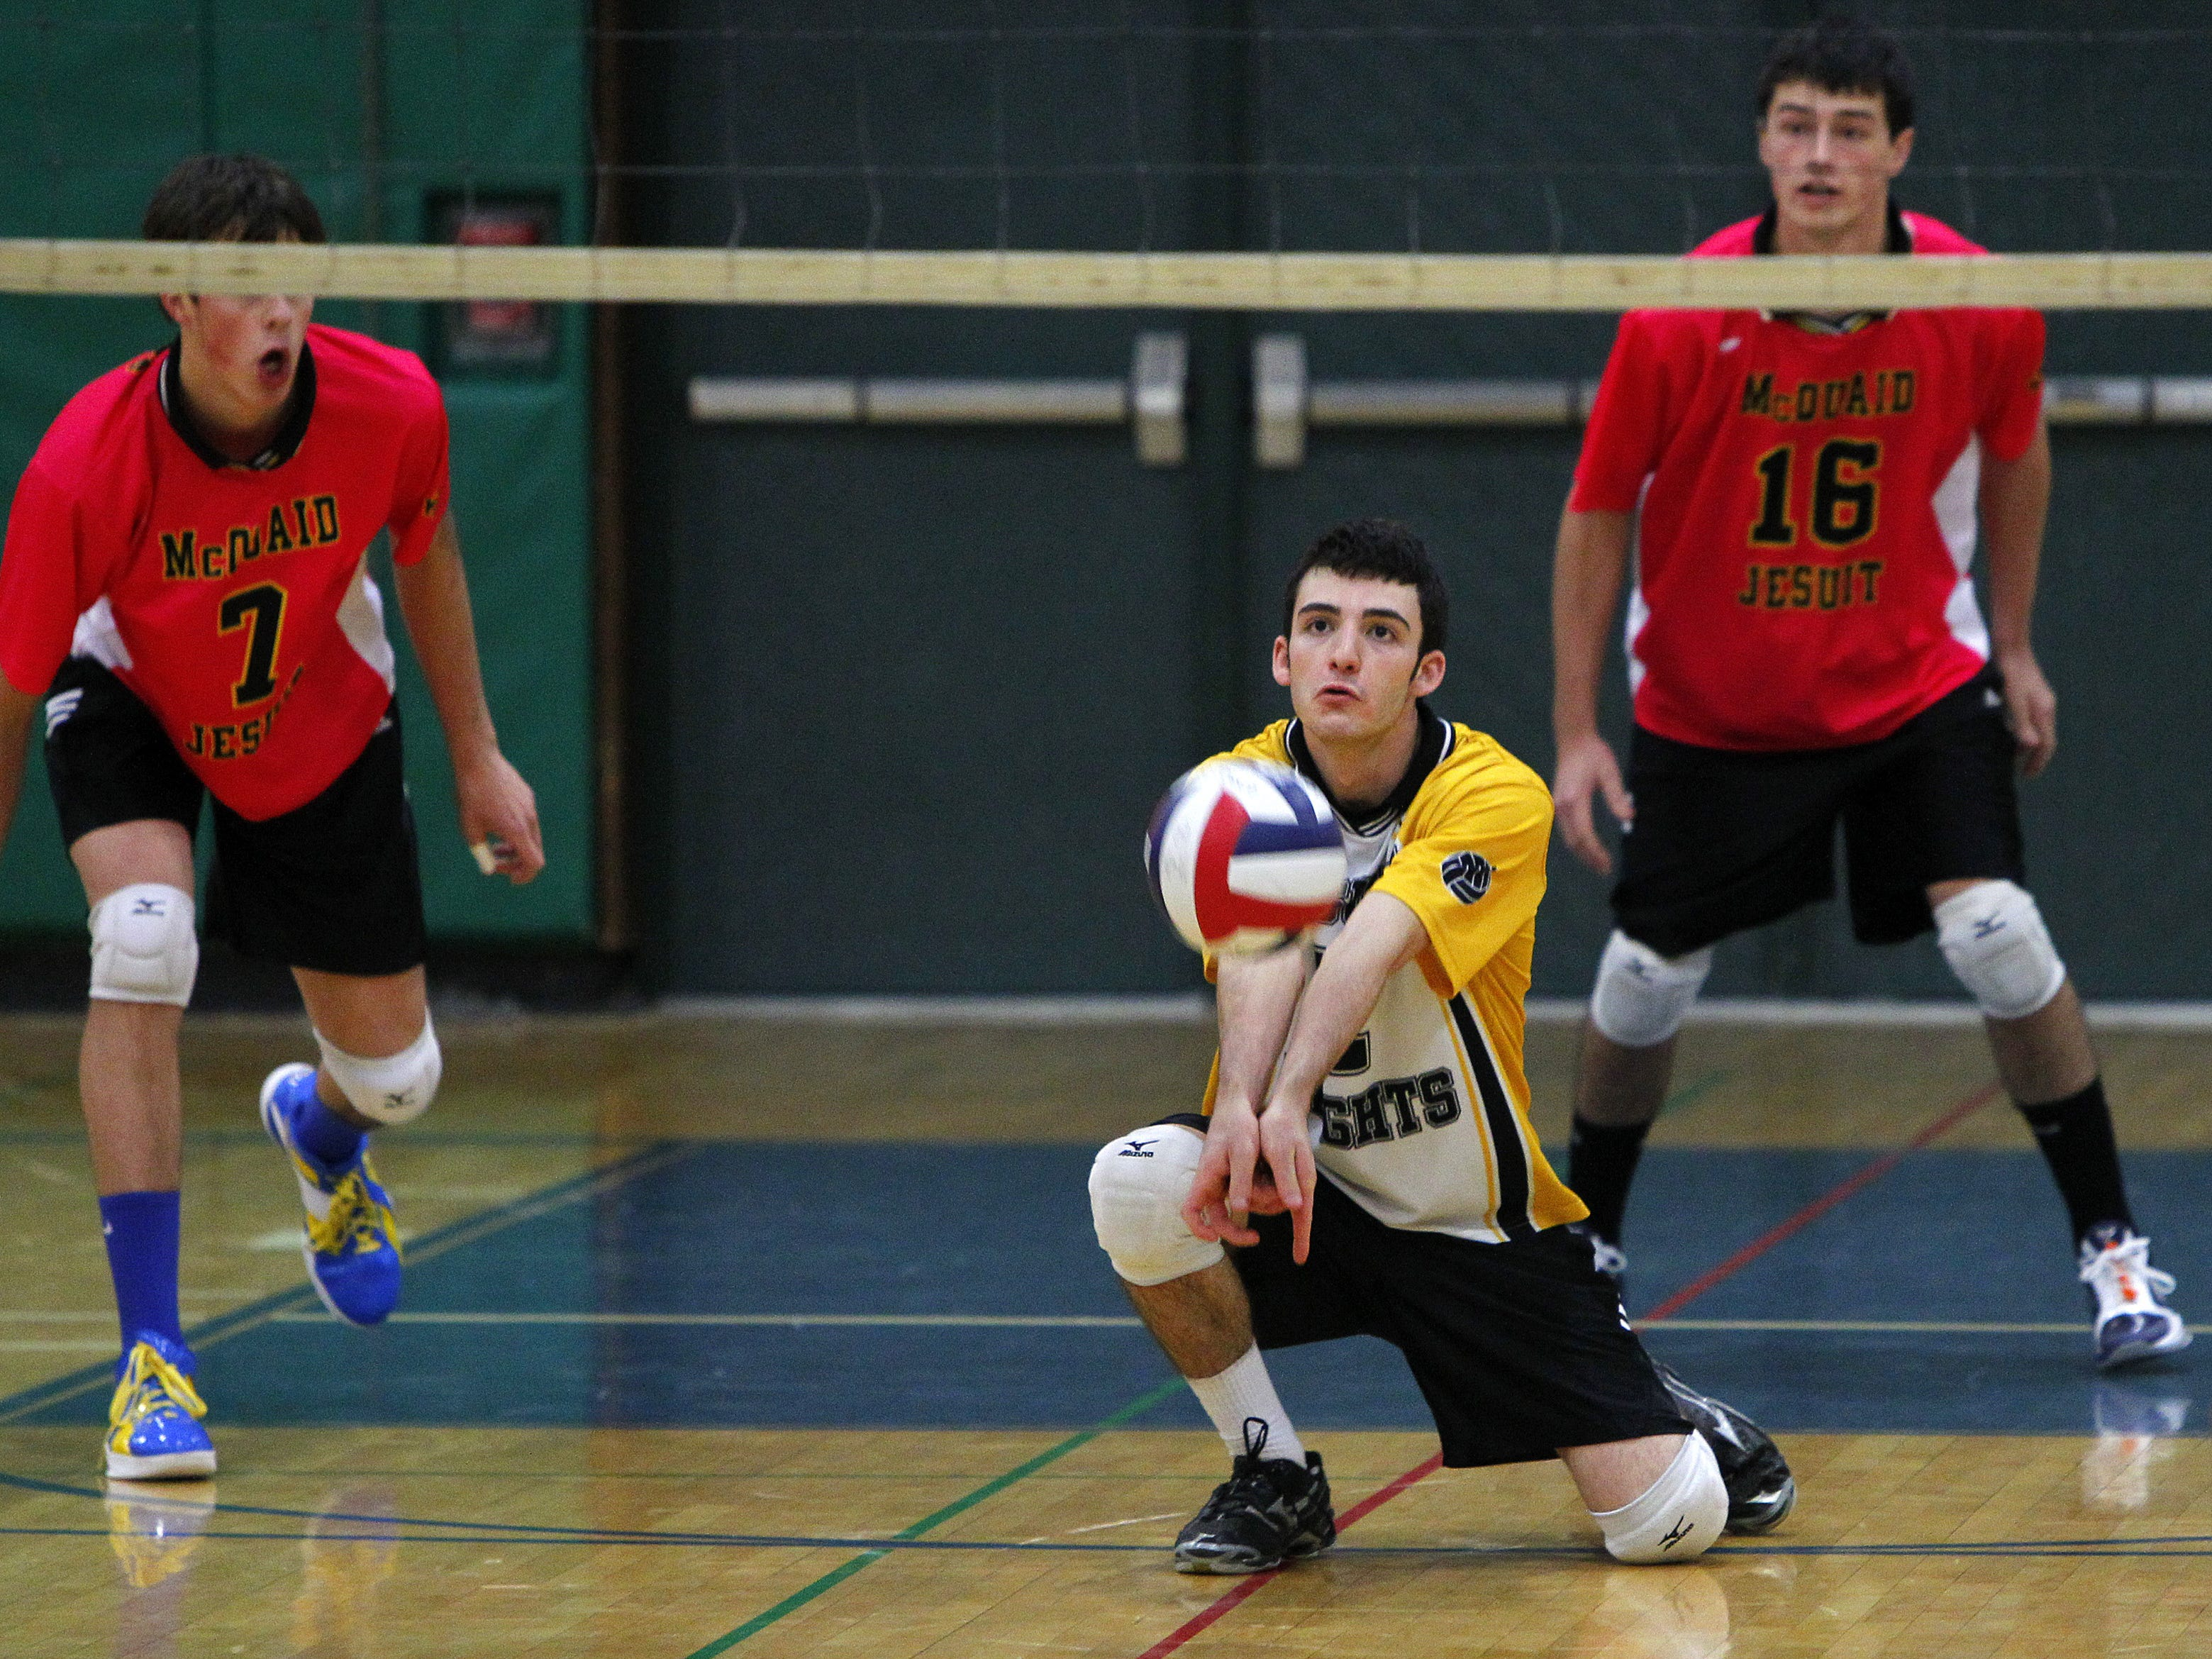 McQuaid's A.J. Logosh, center, looks to pass a ball to the front line during NYSPHSAA Division I boys volleyball championship between the McQuaid Jesuit Knights and the Massapequa Chiefs at Cicero-North Syracuse High School in Cicero Saturday afternoon, November 19, 2011.